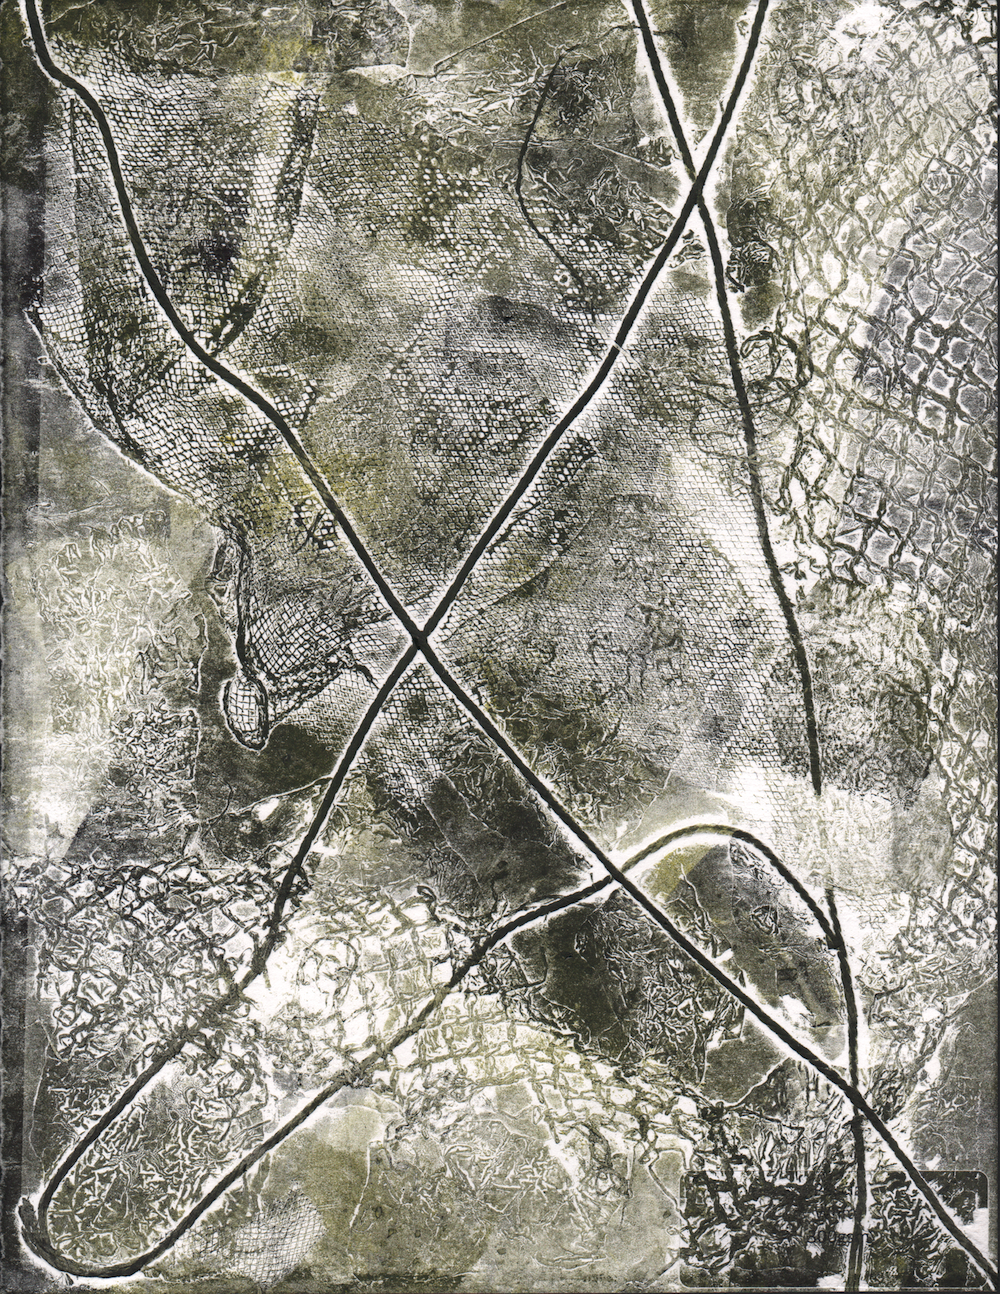 scanned and digitally manipulated image of threads, textiles, and mesh.